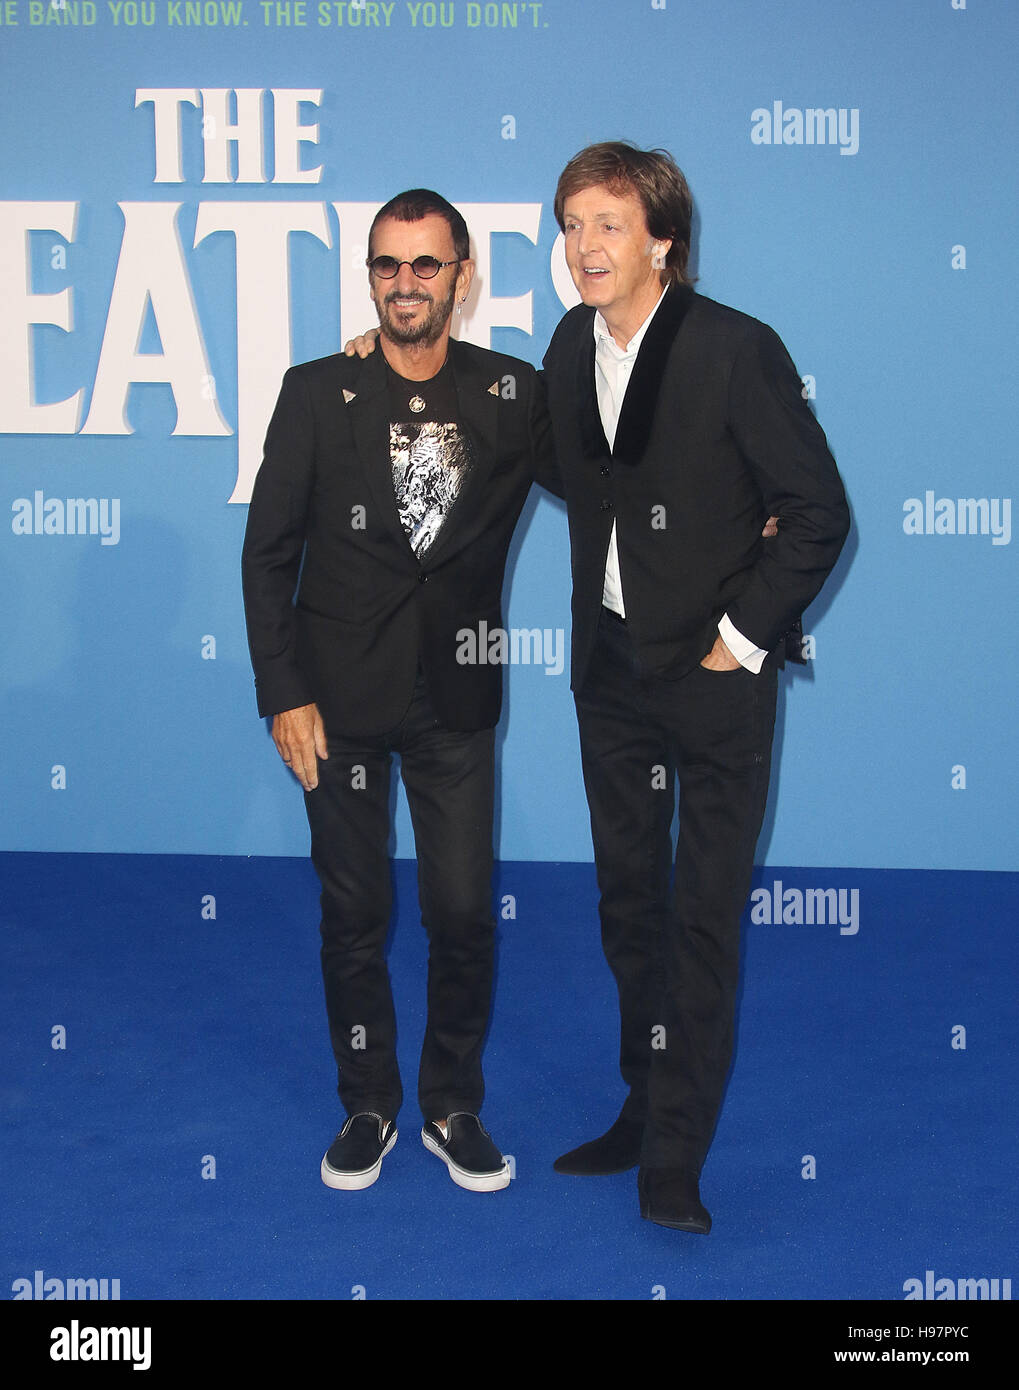 September 15, 2016 - Ringo Starr and Paul McCartney attending 'Eight Days a Week The Touring Years' World - Stock Image